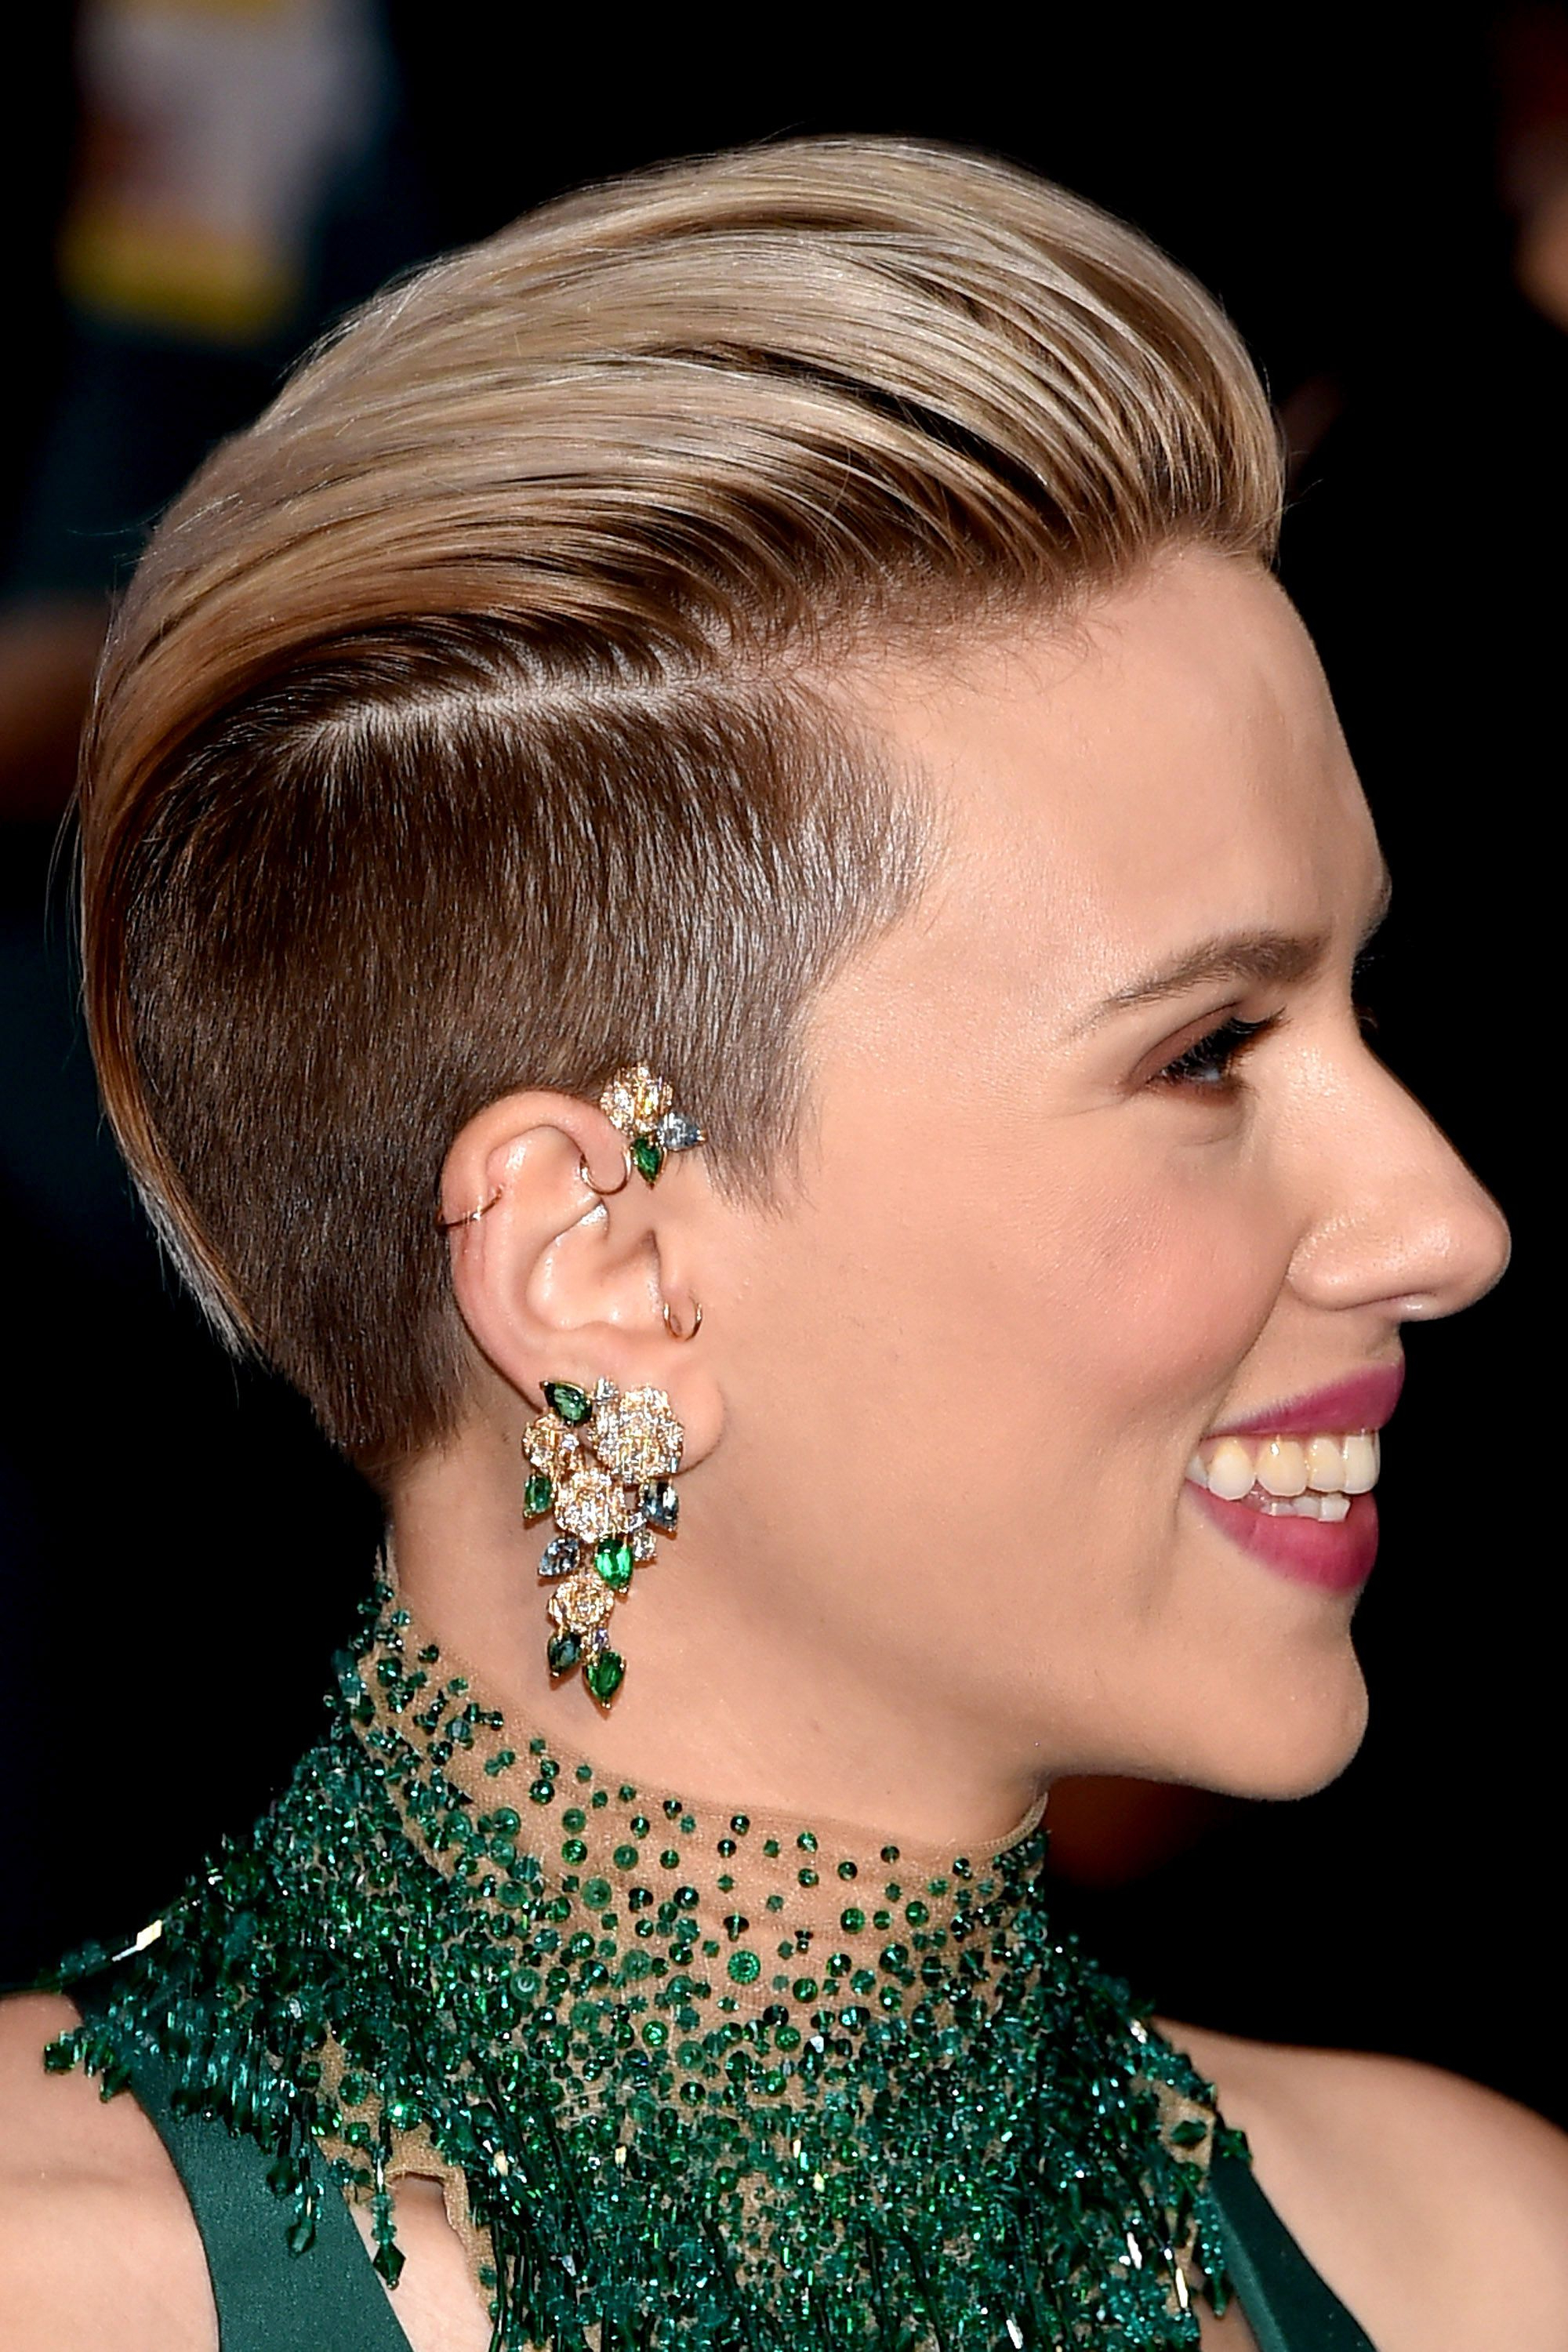 Best Short Hairstyles And Haircuts 2016 – How To Style Short Hair Regarding Short Haircuts For Women With Big Ears (View 14 of 25)